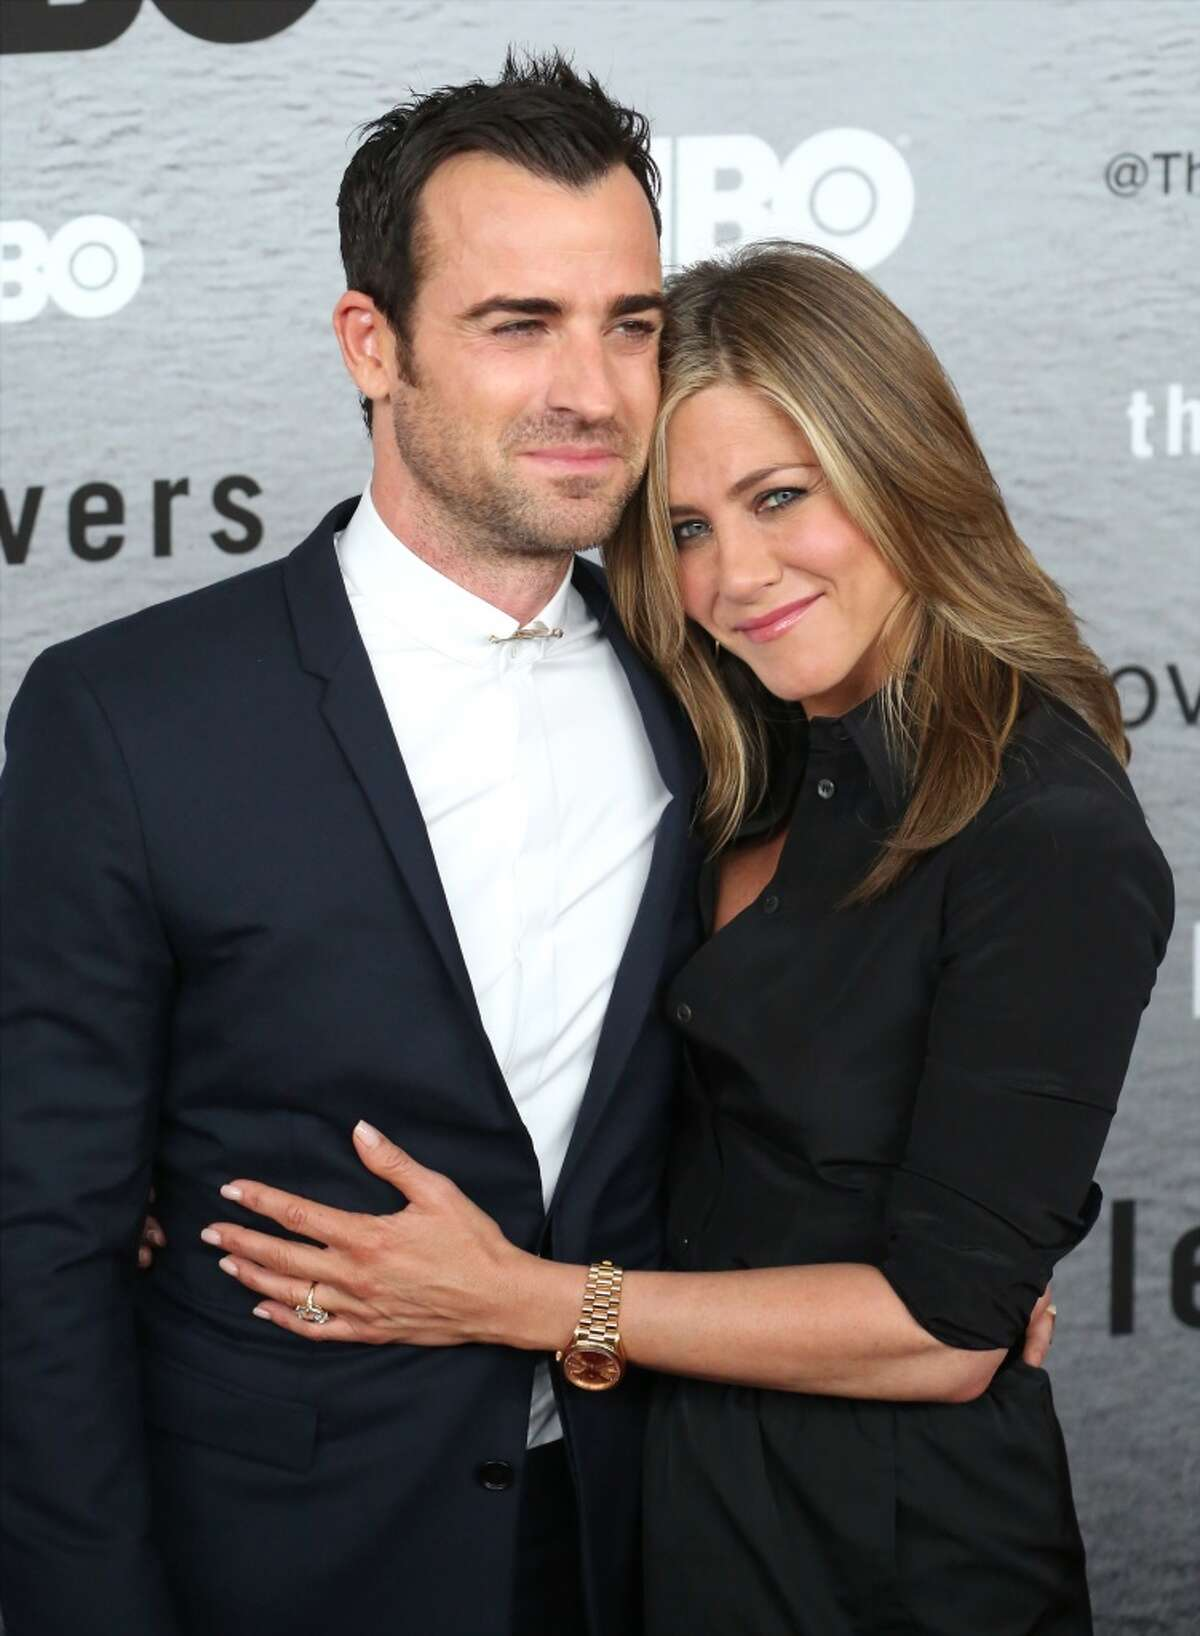 """Justin Theroux and Jennifer Aniston attend """"The Leftovers"""" premiere at NYU Skirball Center on June 23, 2014 in New York City."""